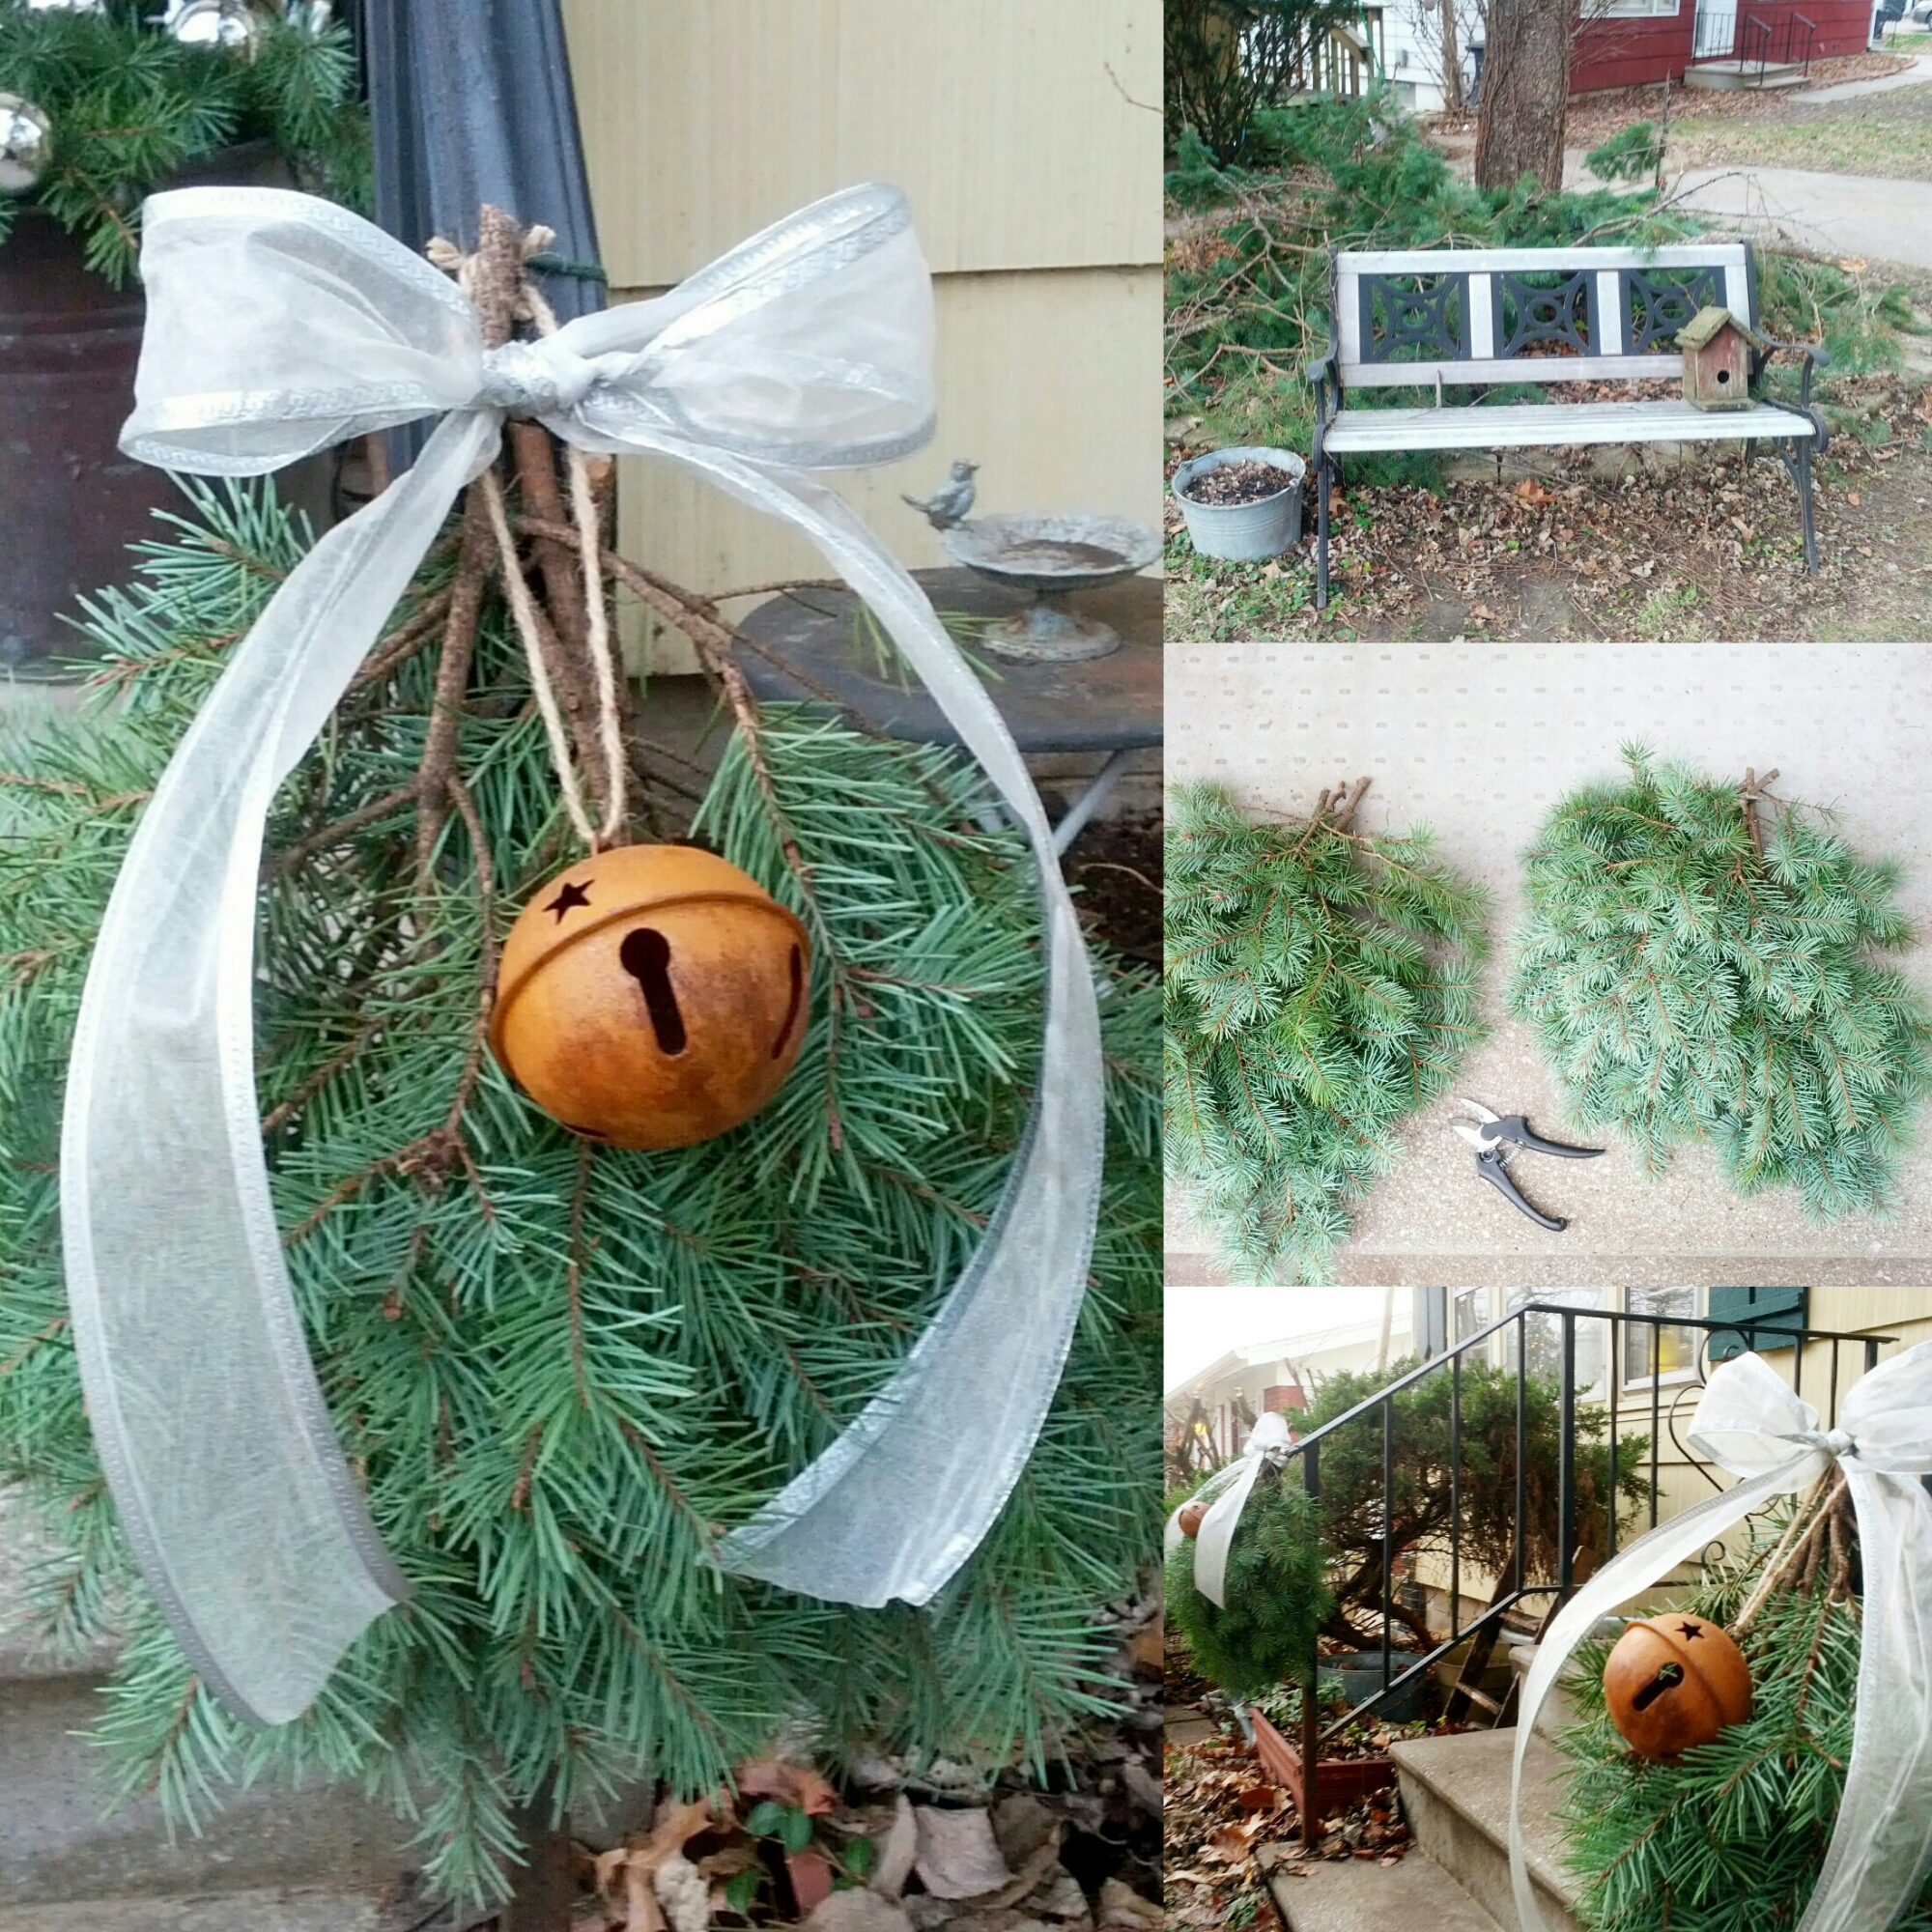 Real Pine Bough Swags for Front Porch with Silver Ribbon and Rustic Jingle Bells. Country cottage style Christmas & holiday outdoor decorating. By Shalom Schultz Designs.